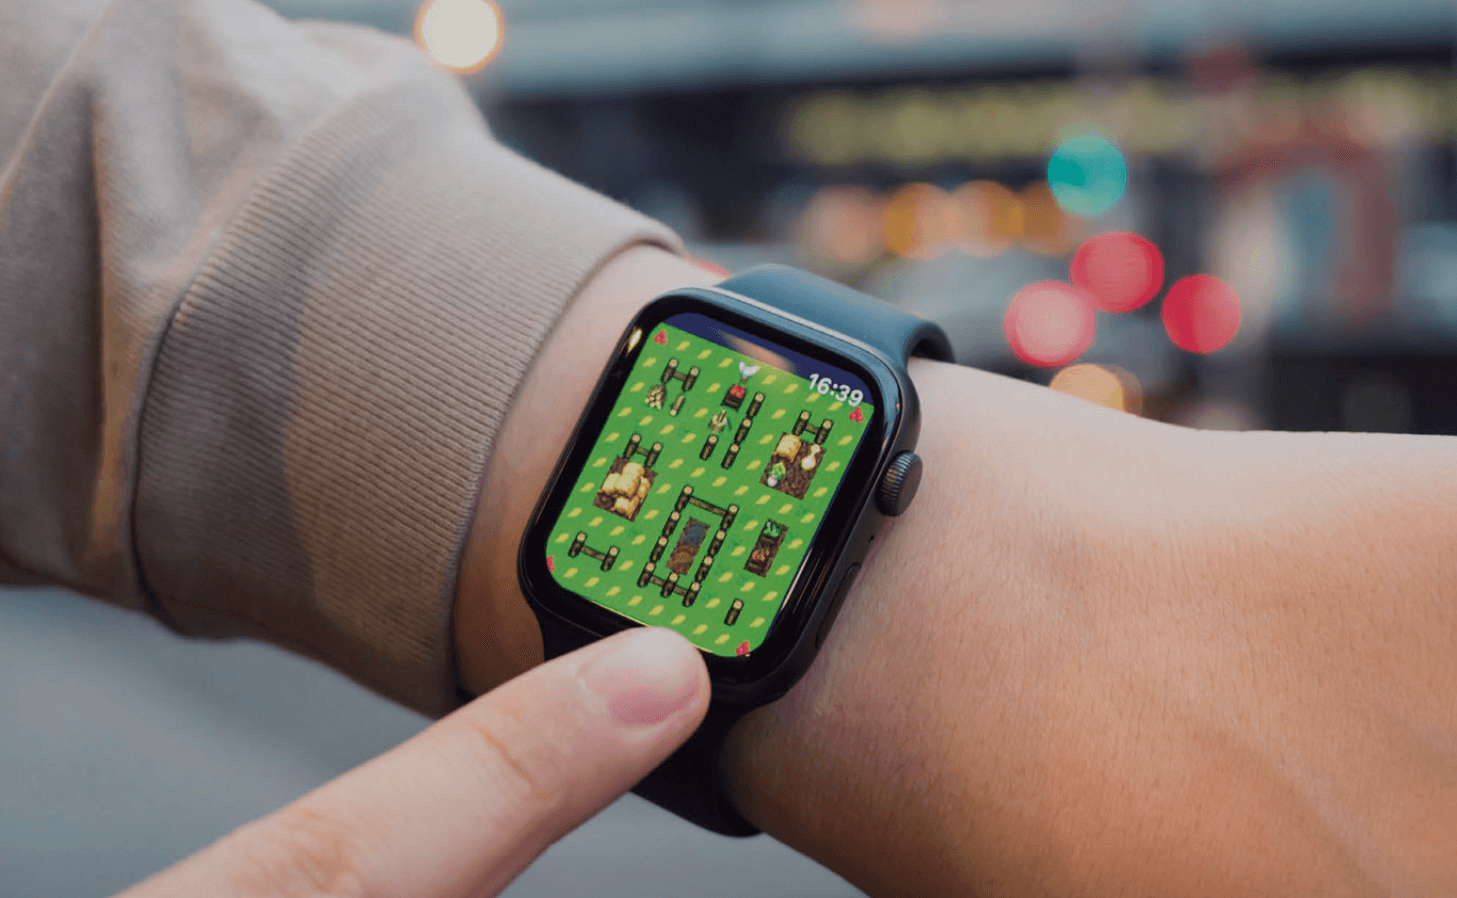 Apple watch 24-1 game